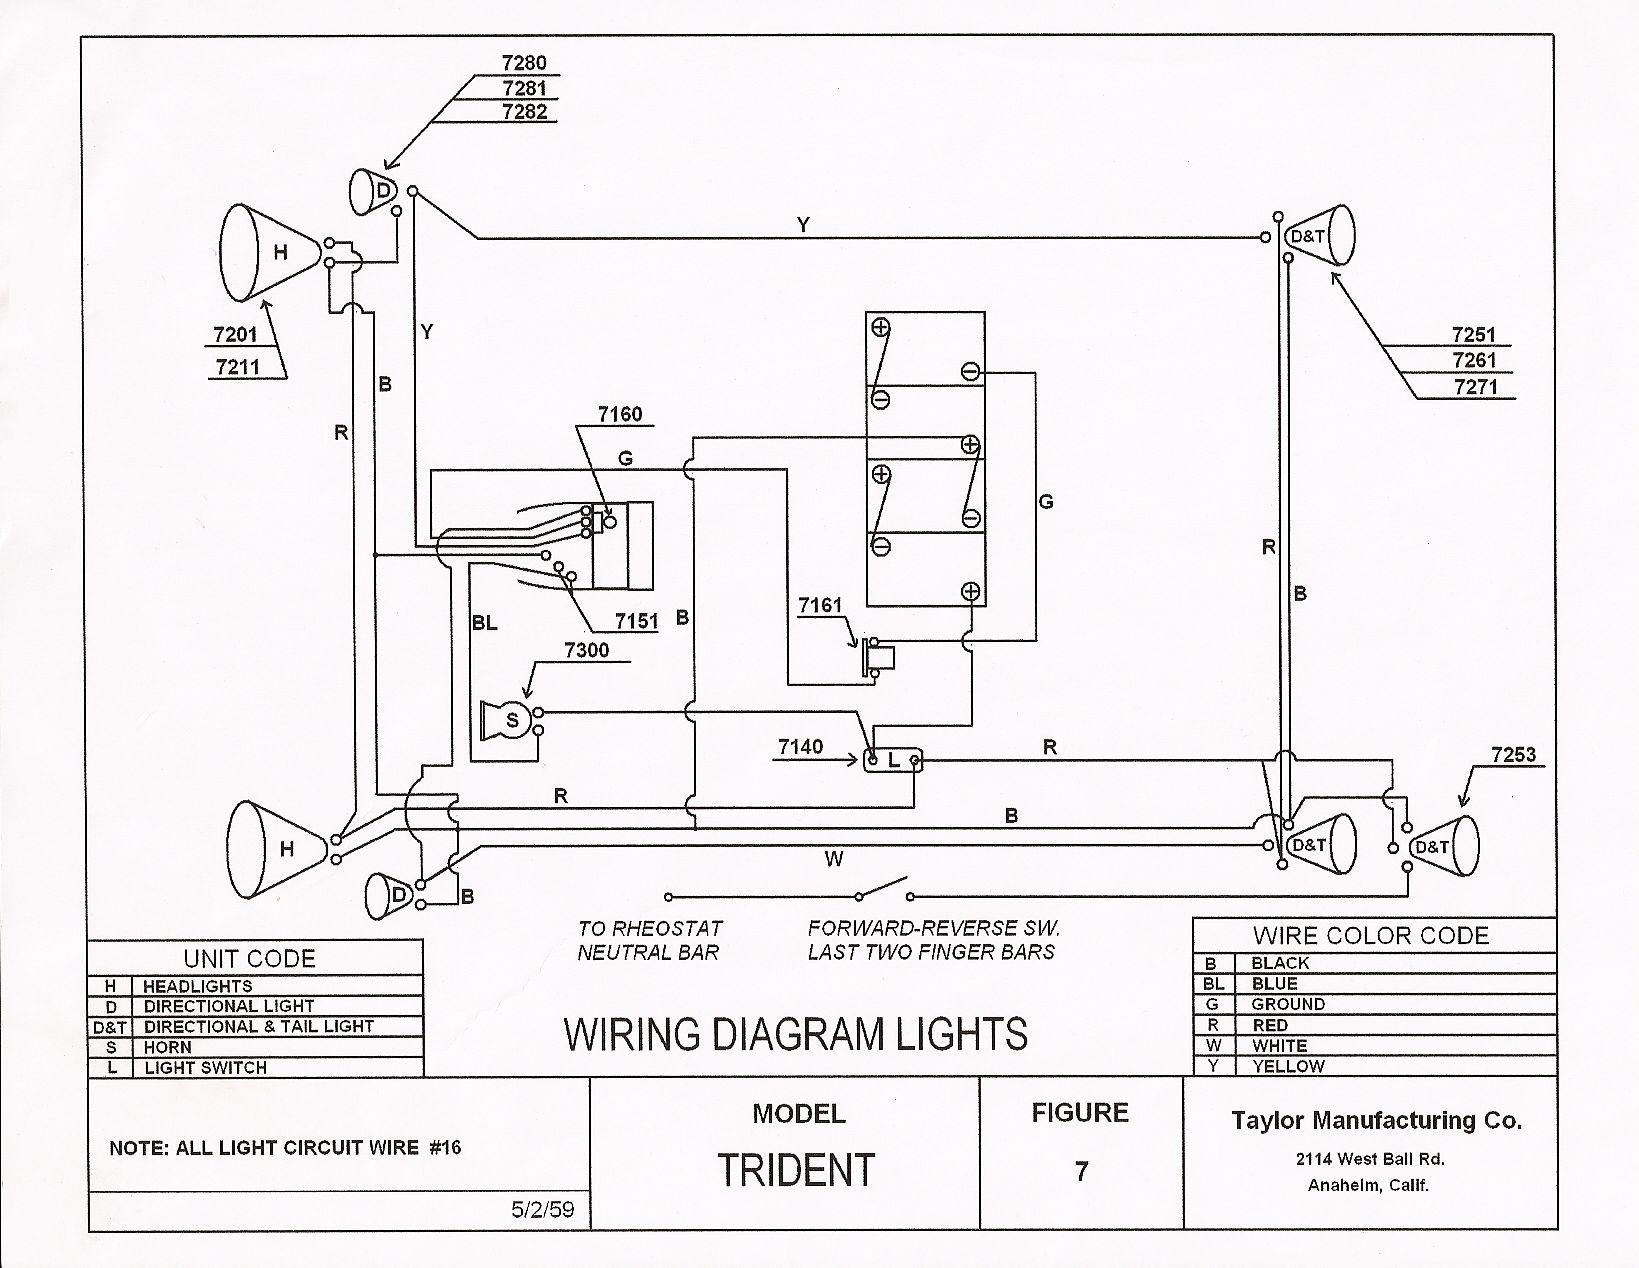 taylor dunn wiring diagram ignition vintagegolfcartparts.com